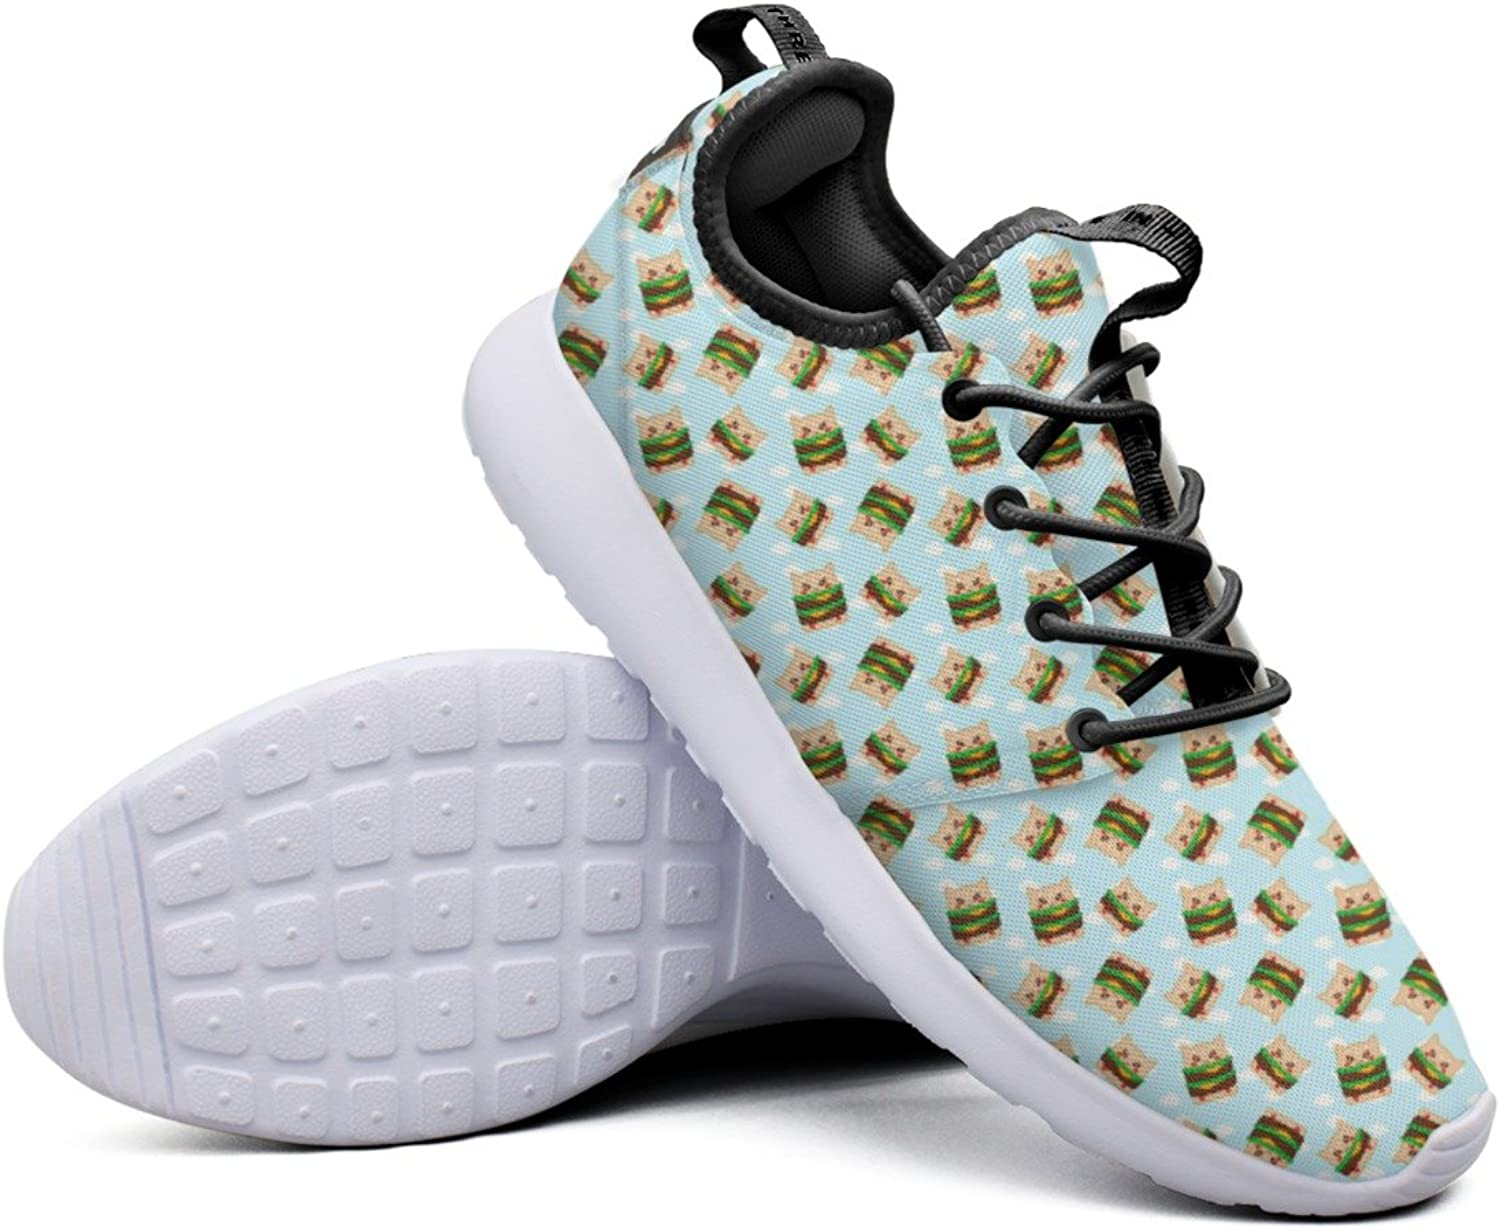 Fashion Sneakers For Women Cheeseburger Cats Burger Clouds Double Food Cool Lightweight Breathable Mesh Womens Running shoes